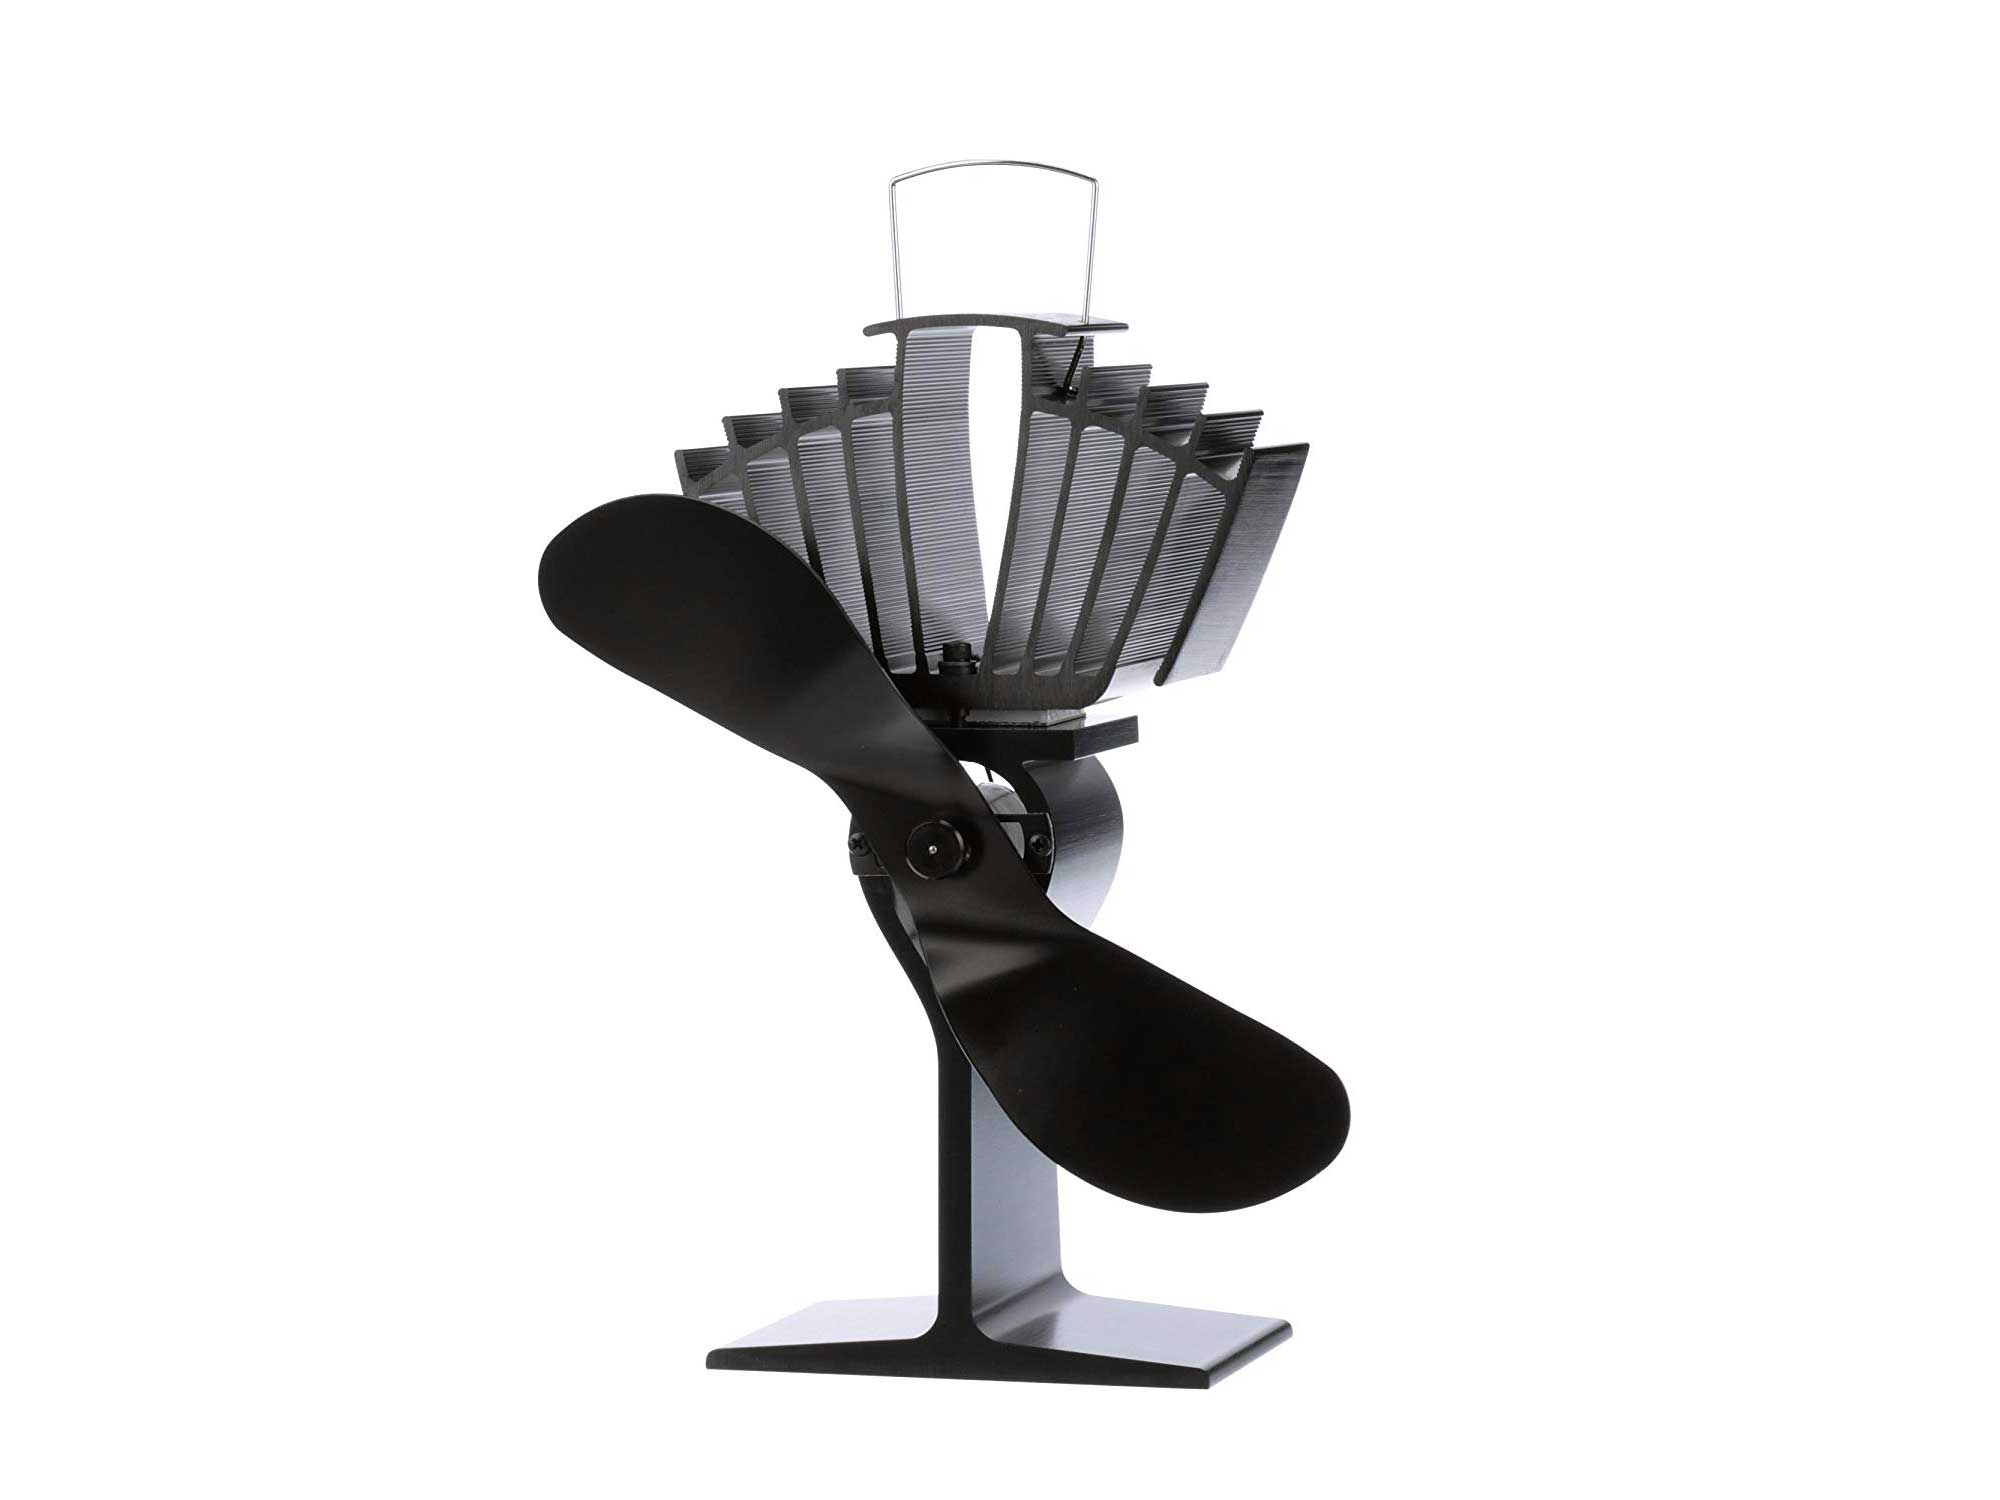 Ecofan stove fan